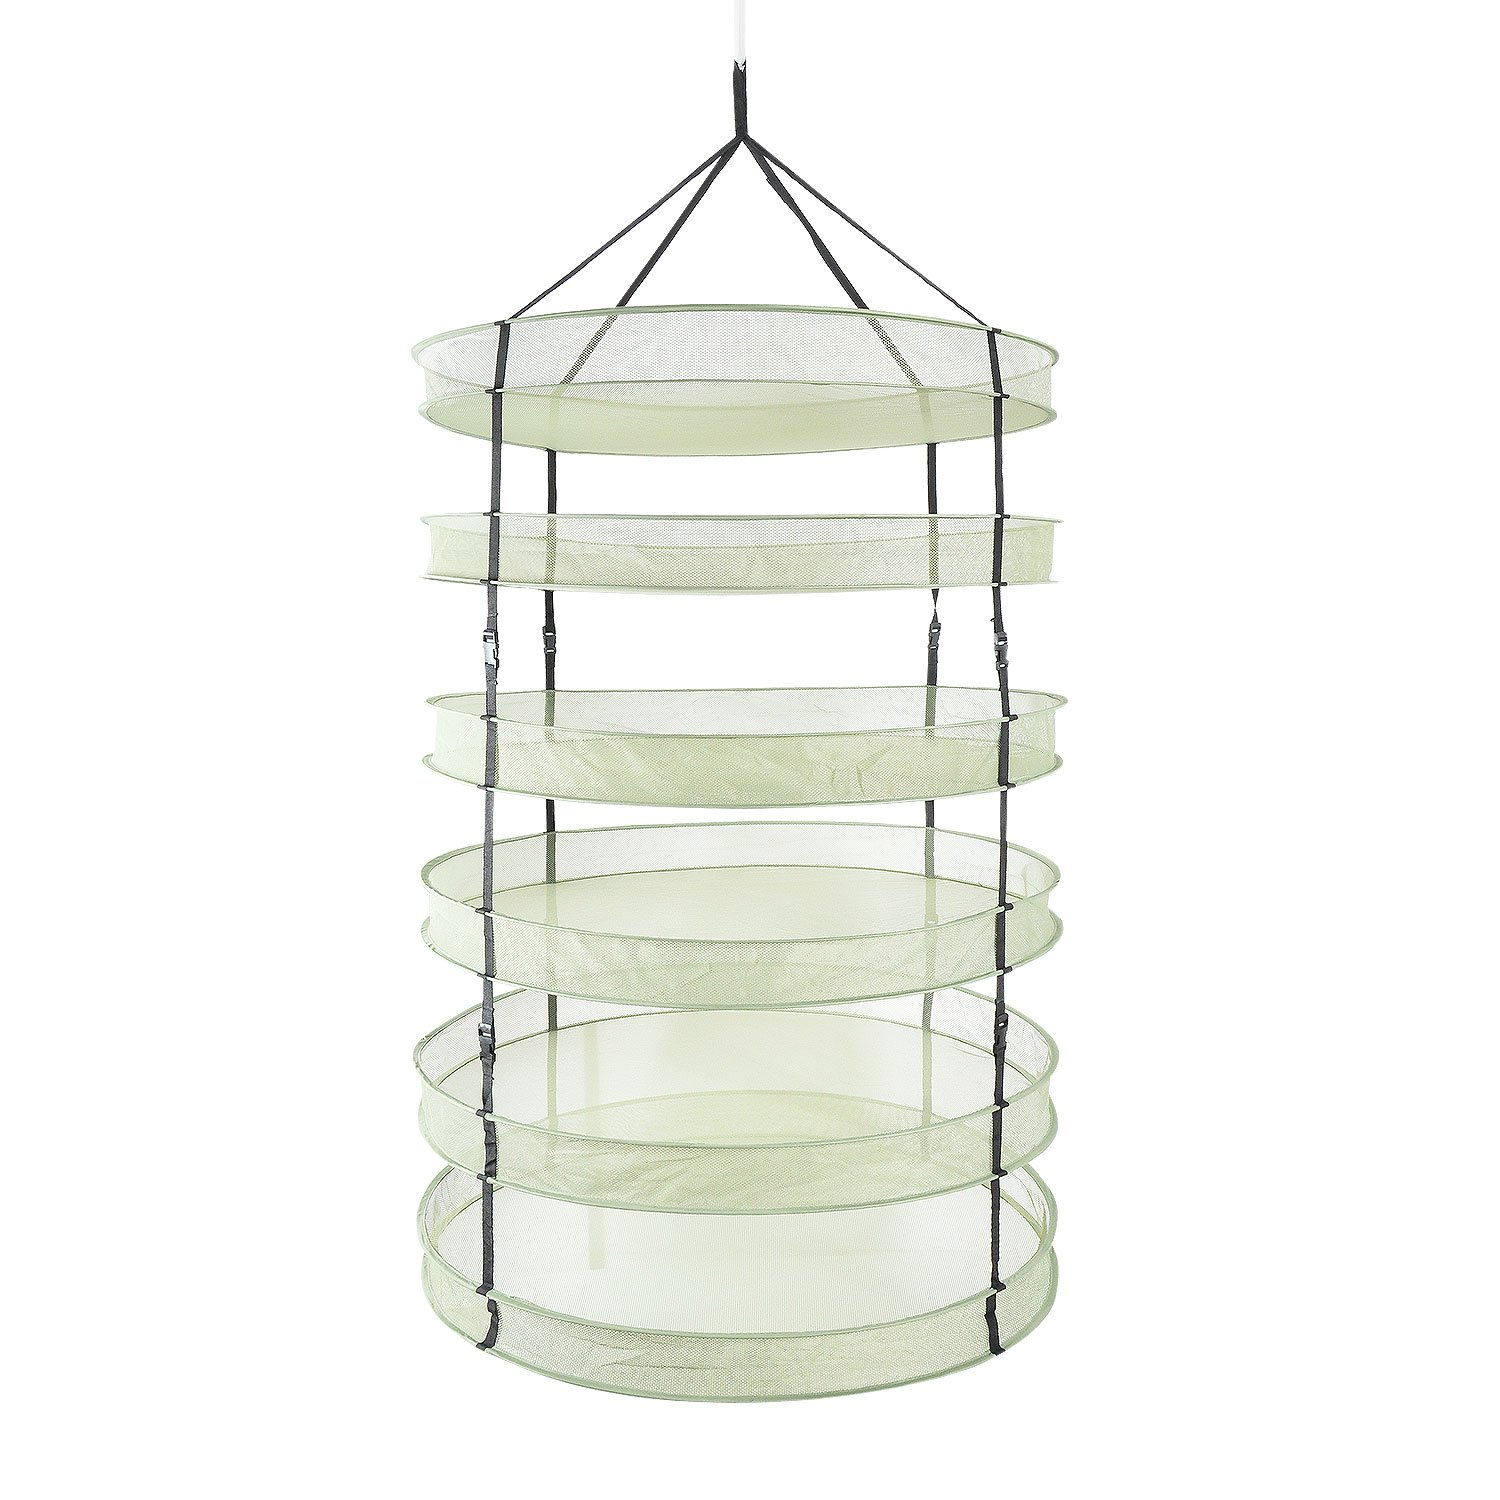 iPower 3 Feet Diameter with 6 Layers Steel Rings Foldable Heavy Duty Hanging Dryer Rack, Collapsible Mesh Hydroponic Drying Rack Net by iPower